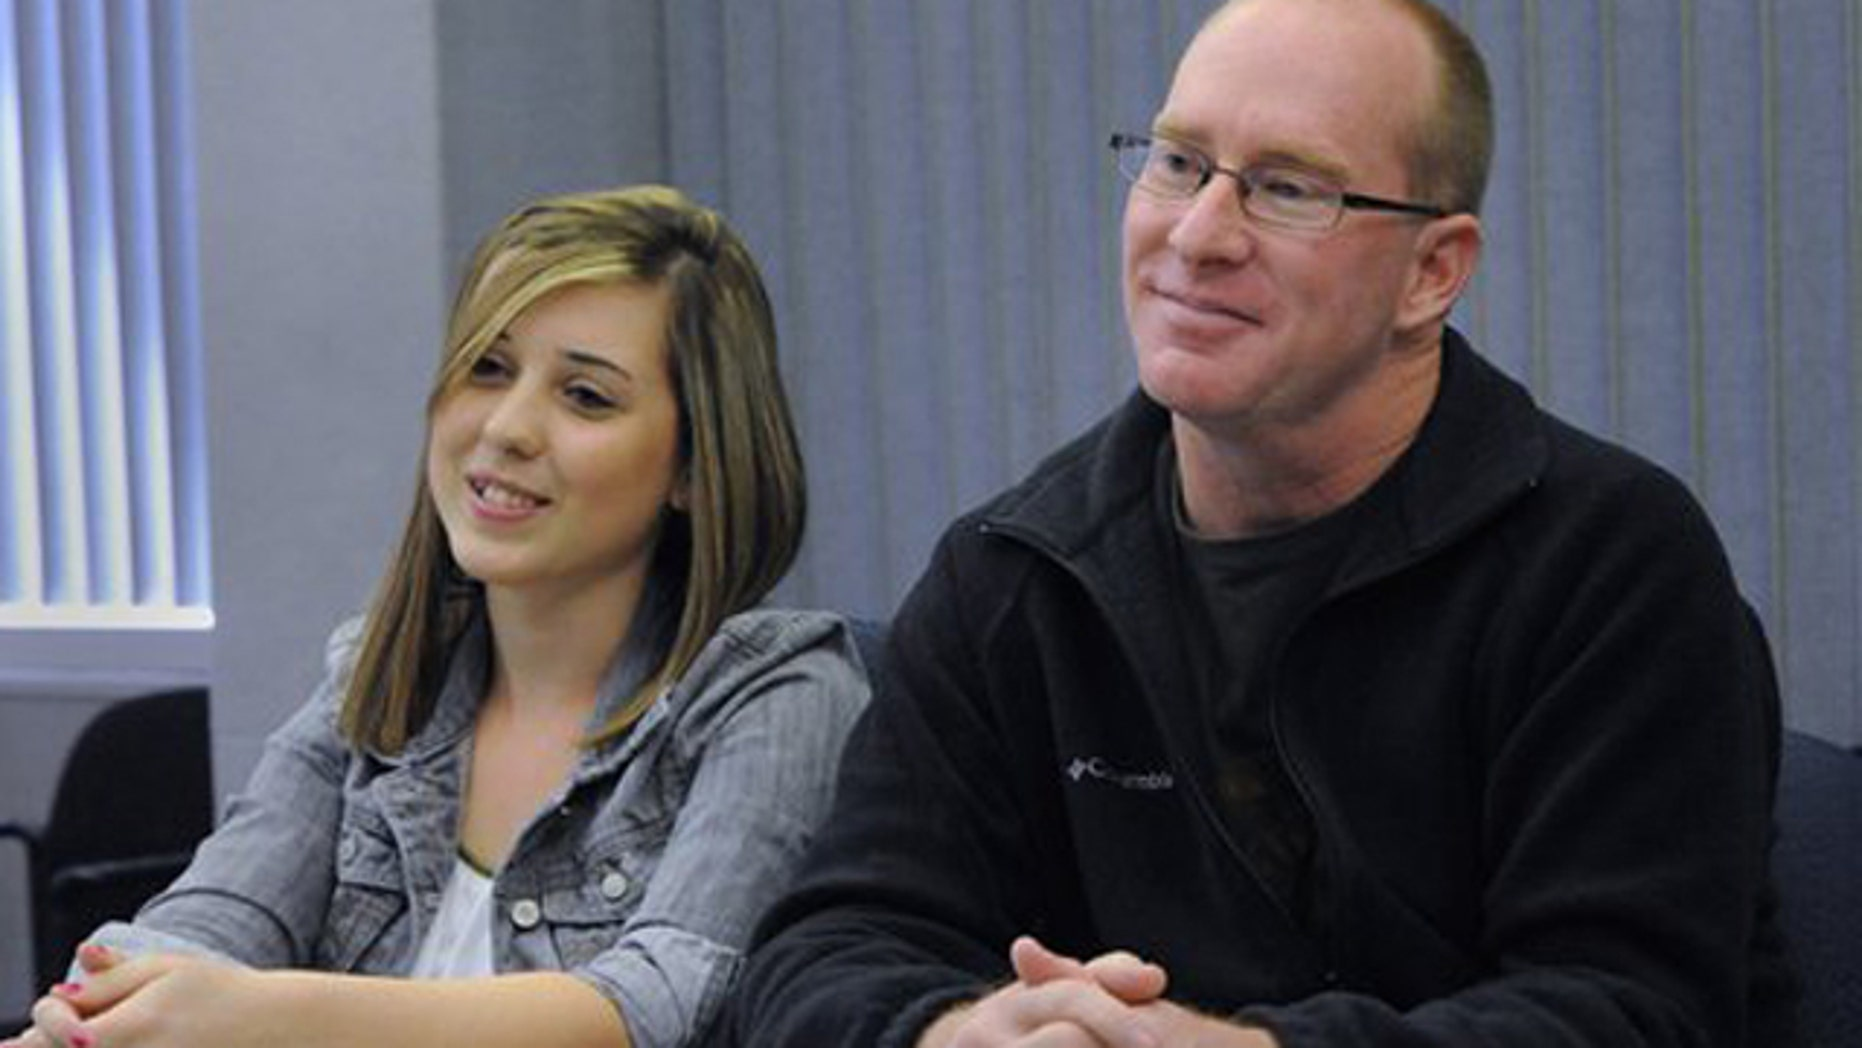 Feb. 28, 2012: Enochs High School student Jordan Powers, 18, and James Hooker, 41,  talk about their relationship during an interview in Modesto.